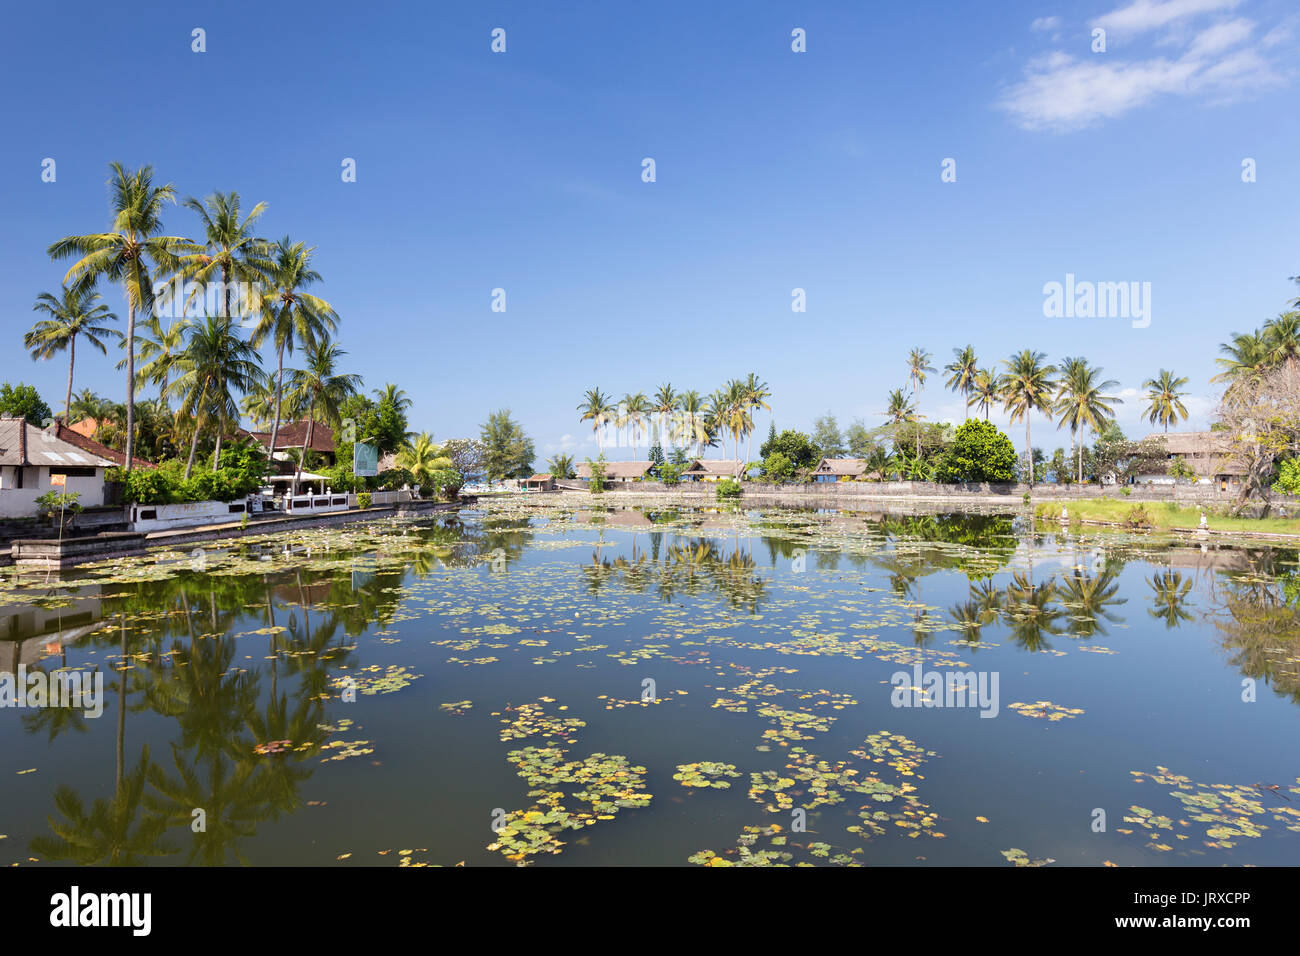 Lotus water lilies growing in the lagoon at Candidasa, Bali, Indonesia - Stock Image